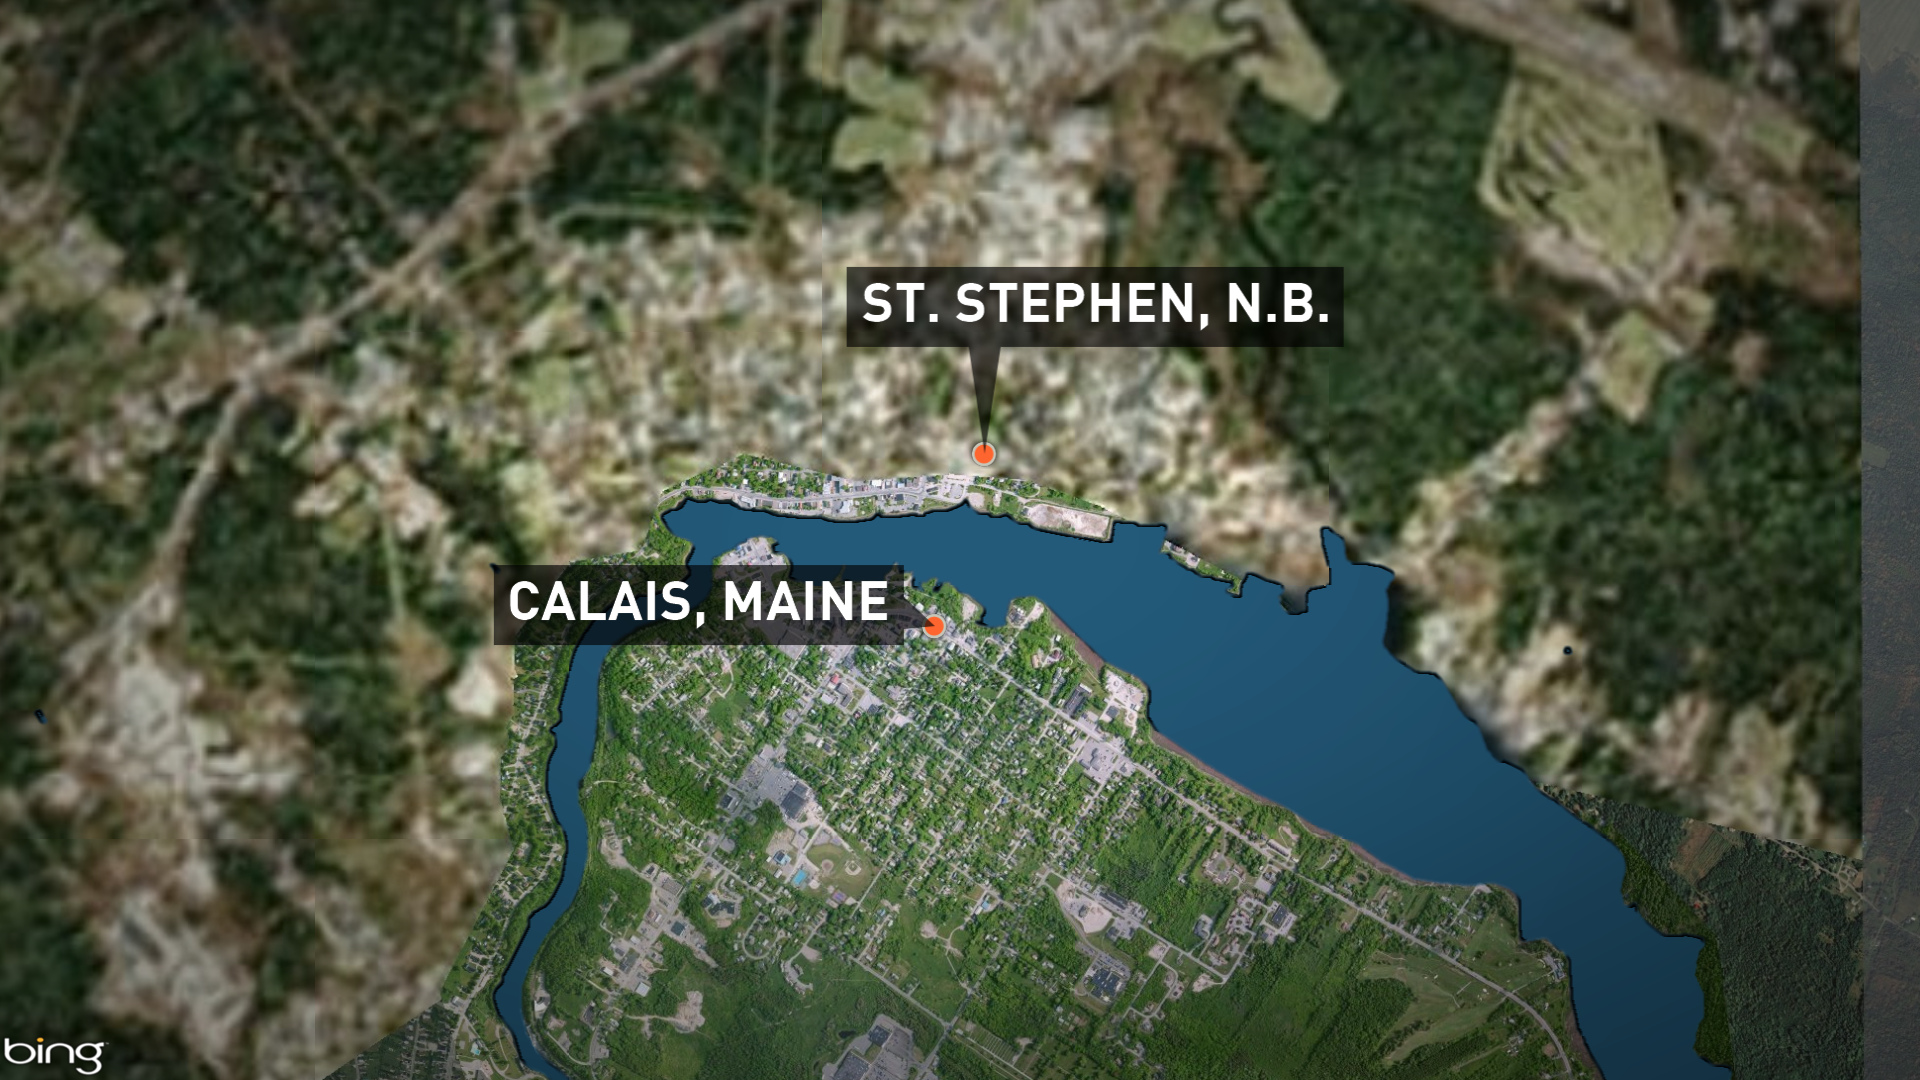 Maine Man Jailed For Floating To Canada On Air Mattress